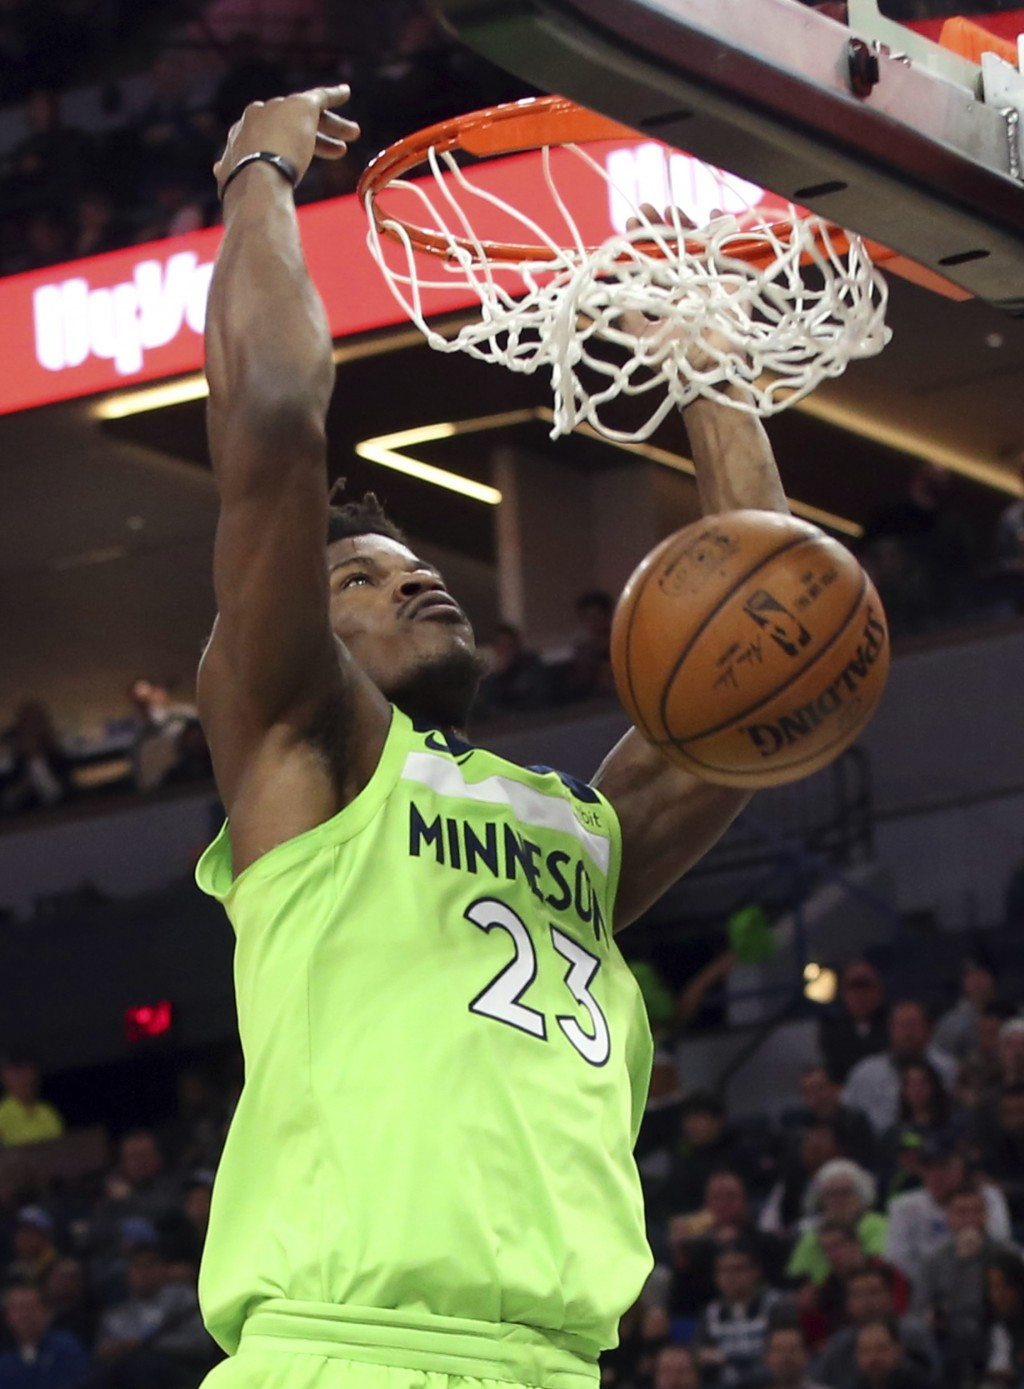 Minnesota Timberwolves' Jimmy Butler dunks against the New Orleans Pelicans in the first half of an NBA basketball game Saturday, Feb. 3, 2018, in Min...